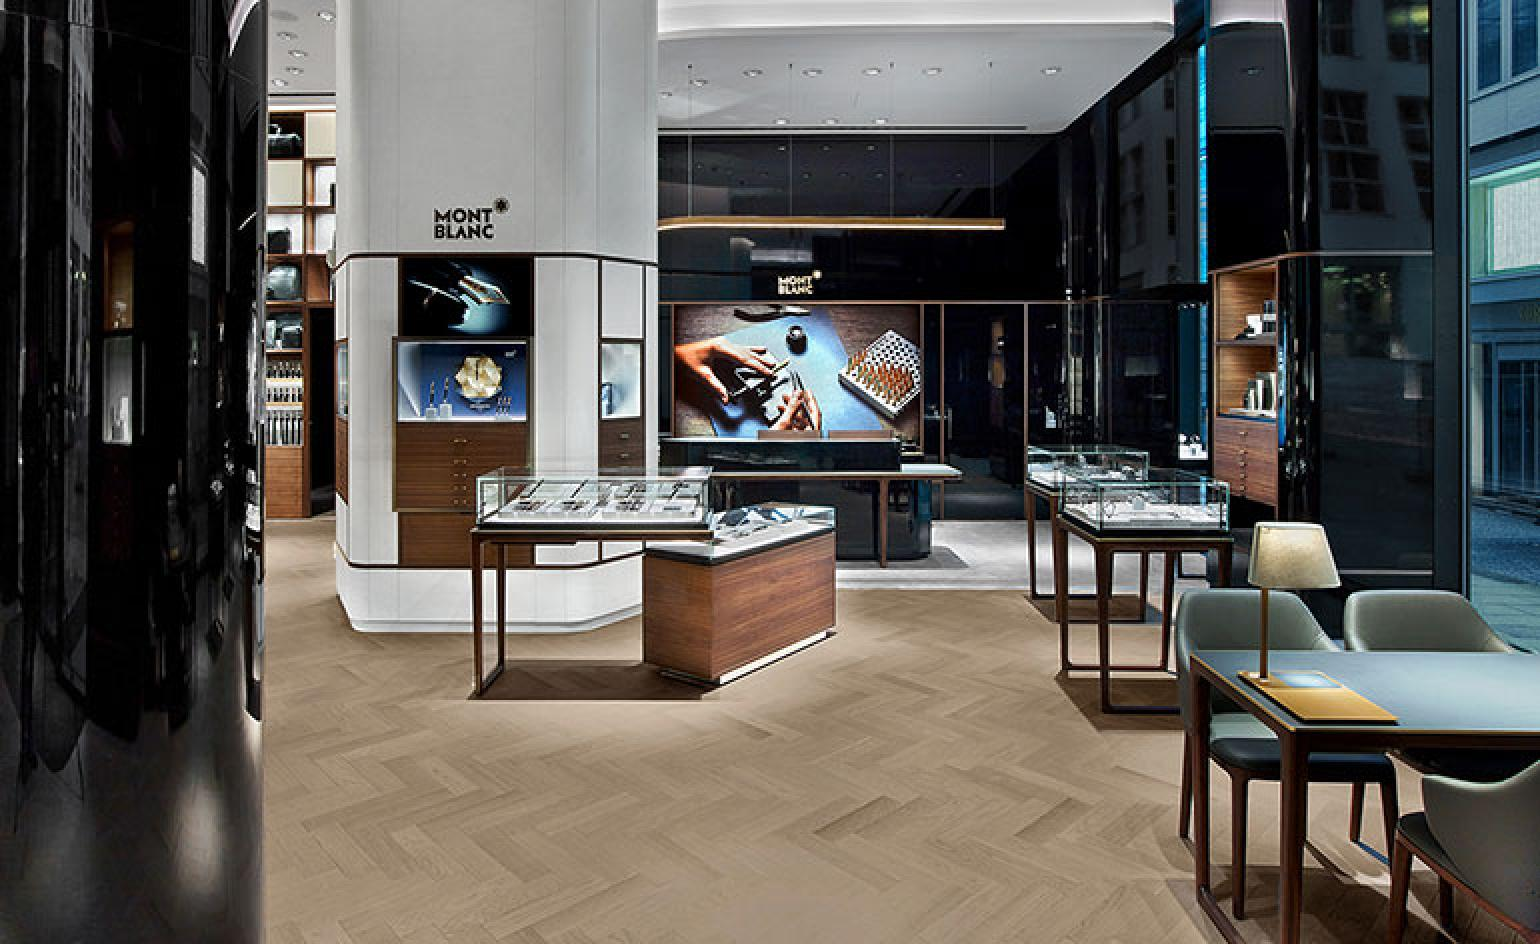 Interior Designer Hamburg Noé Duchaufour Lawrance Creates Global Concept For Montblanc